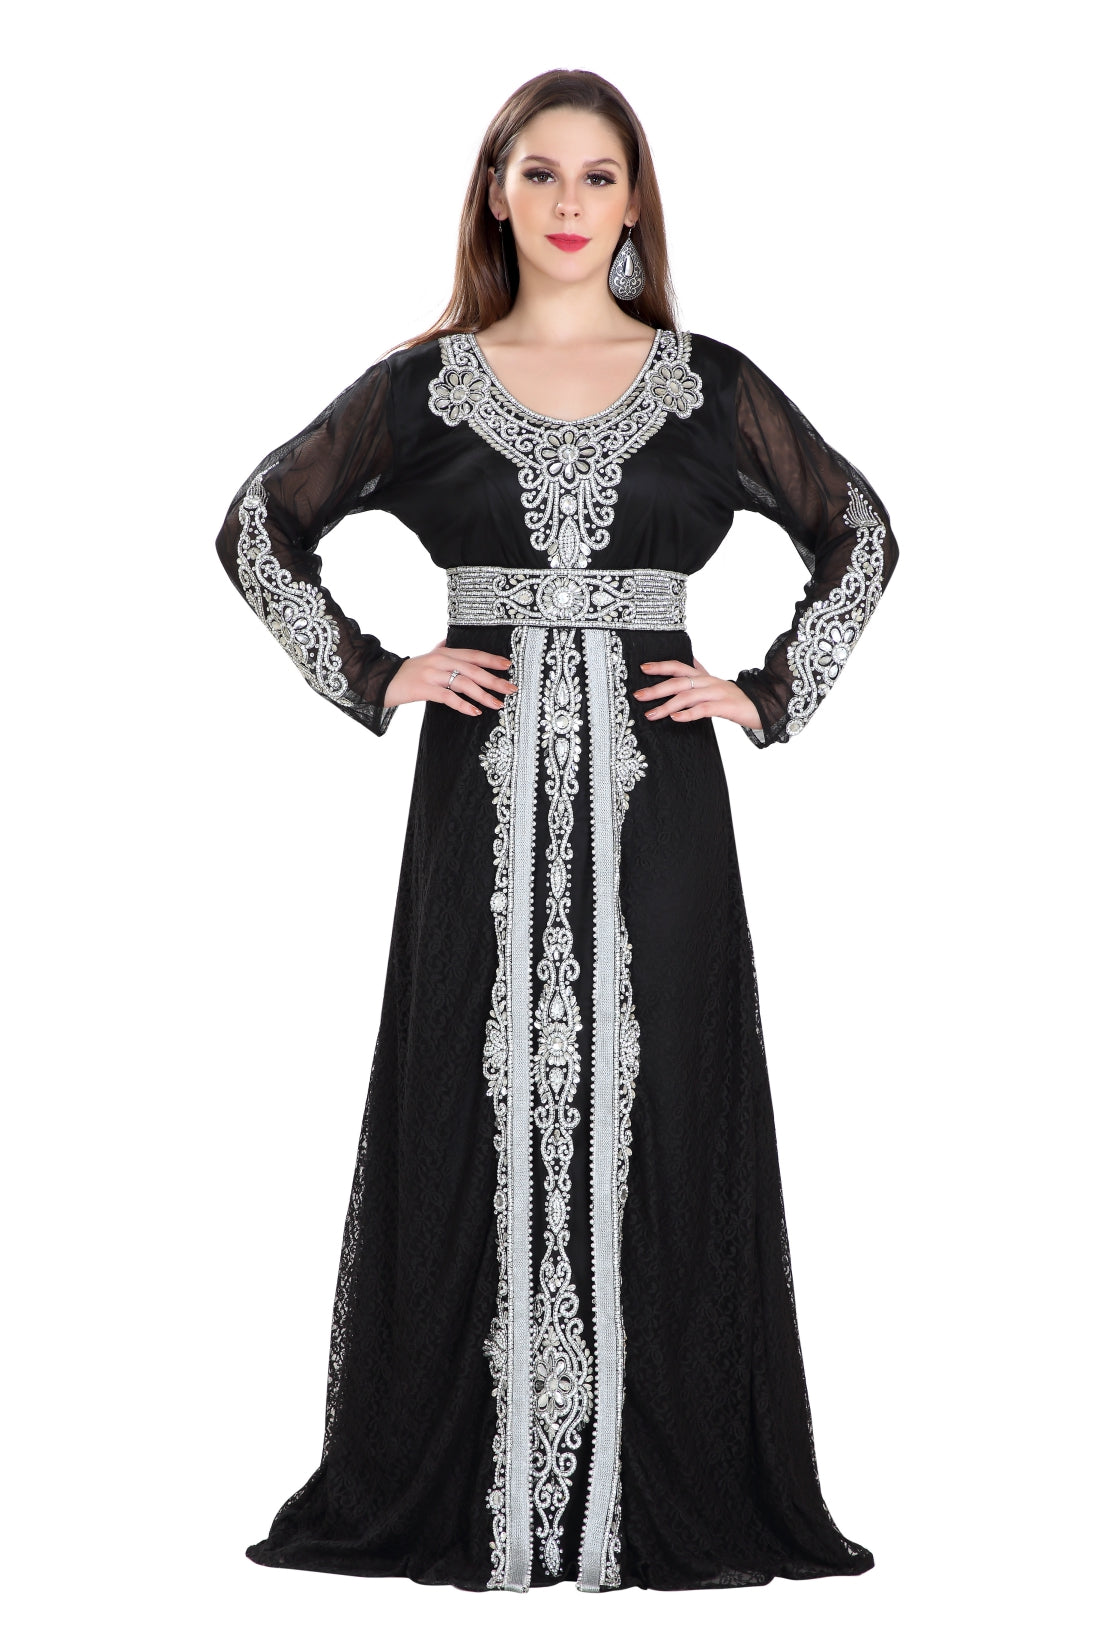 DESIGNER WEAR MUSLIM ABAYA AND KAFTAN. HAUTE COUTRE ABAYA COLLECTION FROM MAXIM CREATION.